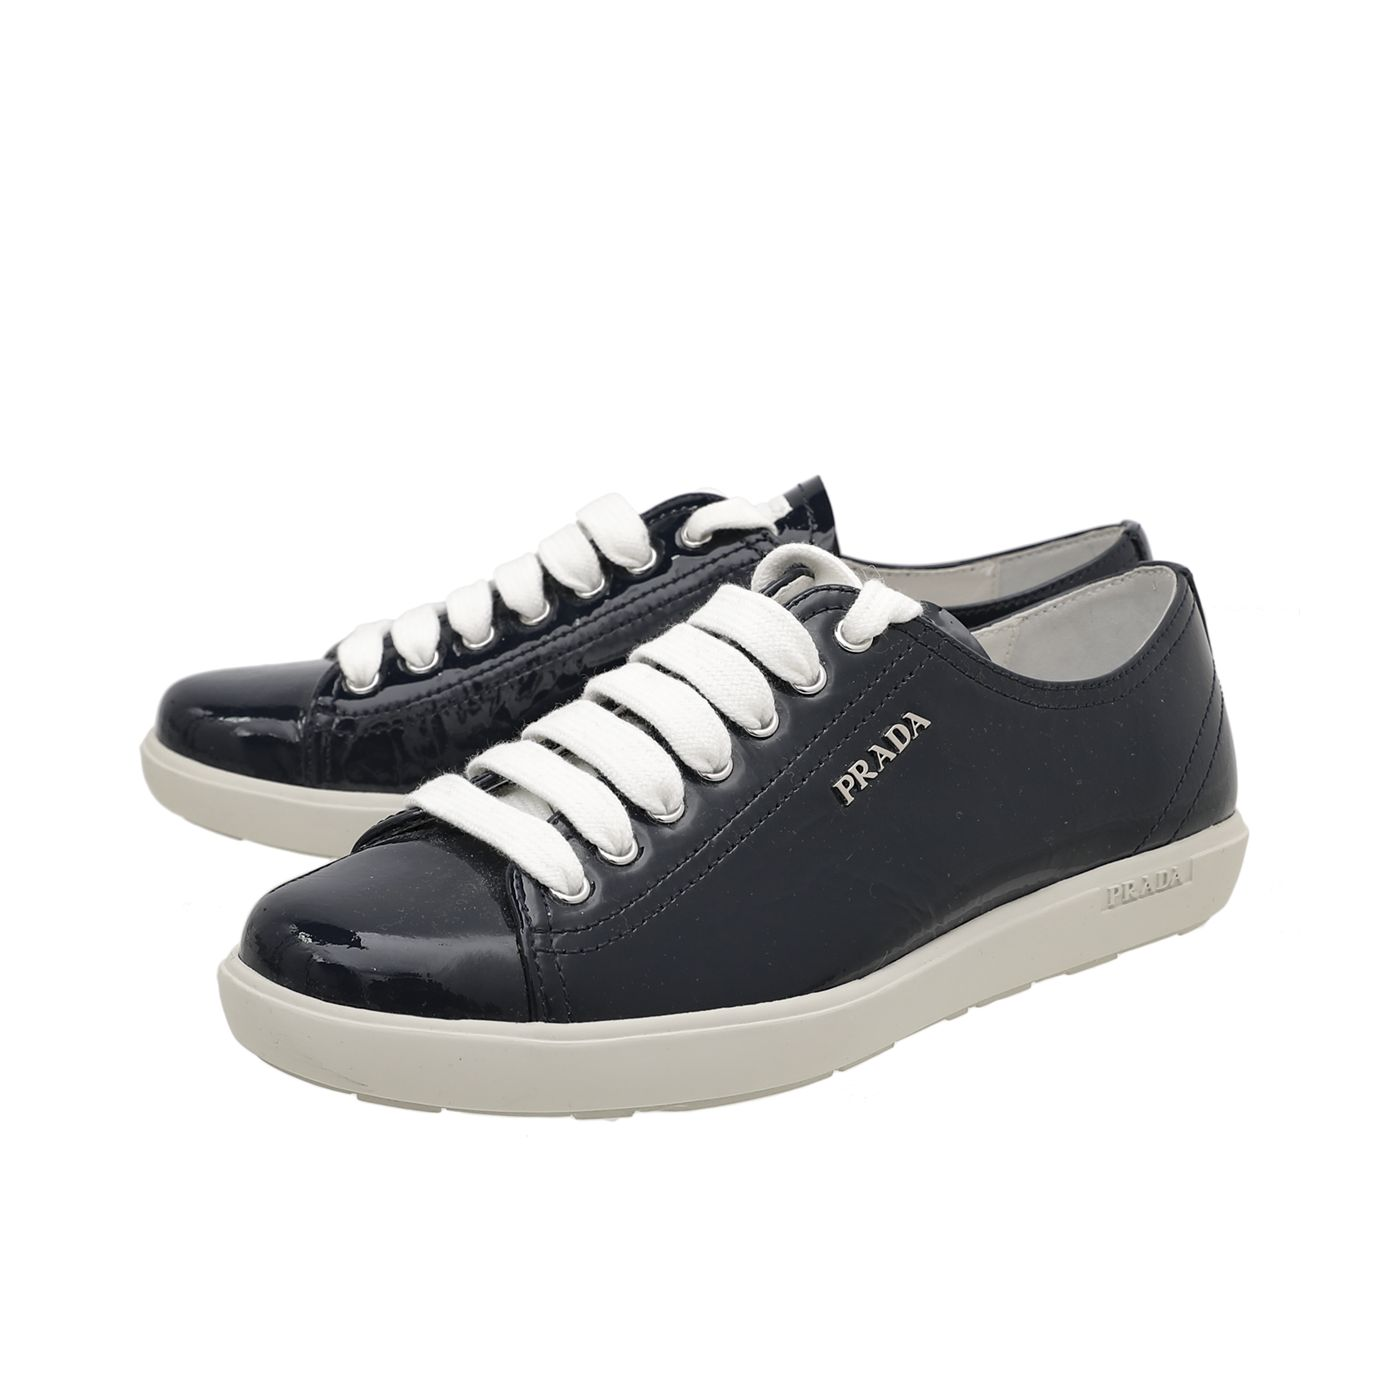 Prada Blue Low Cut Lace Up Sneakers 36.5